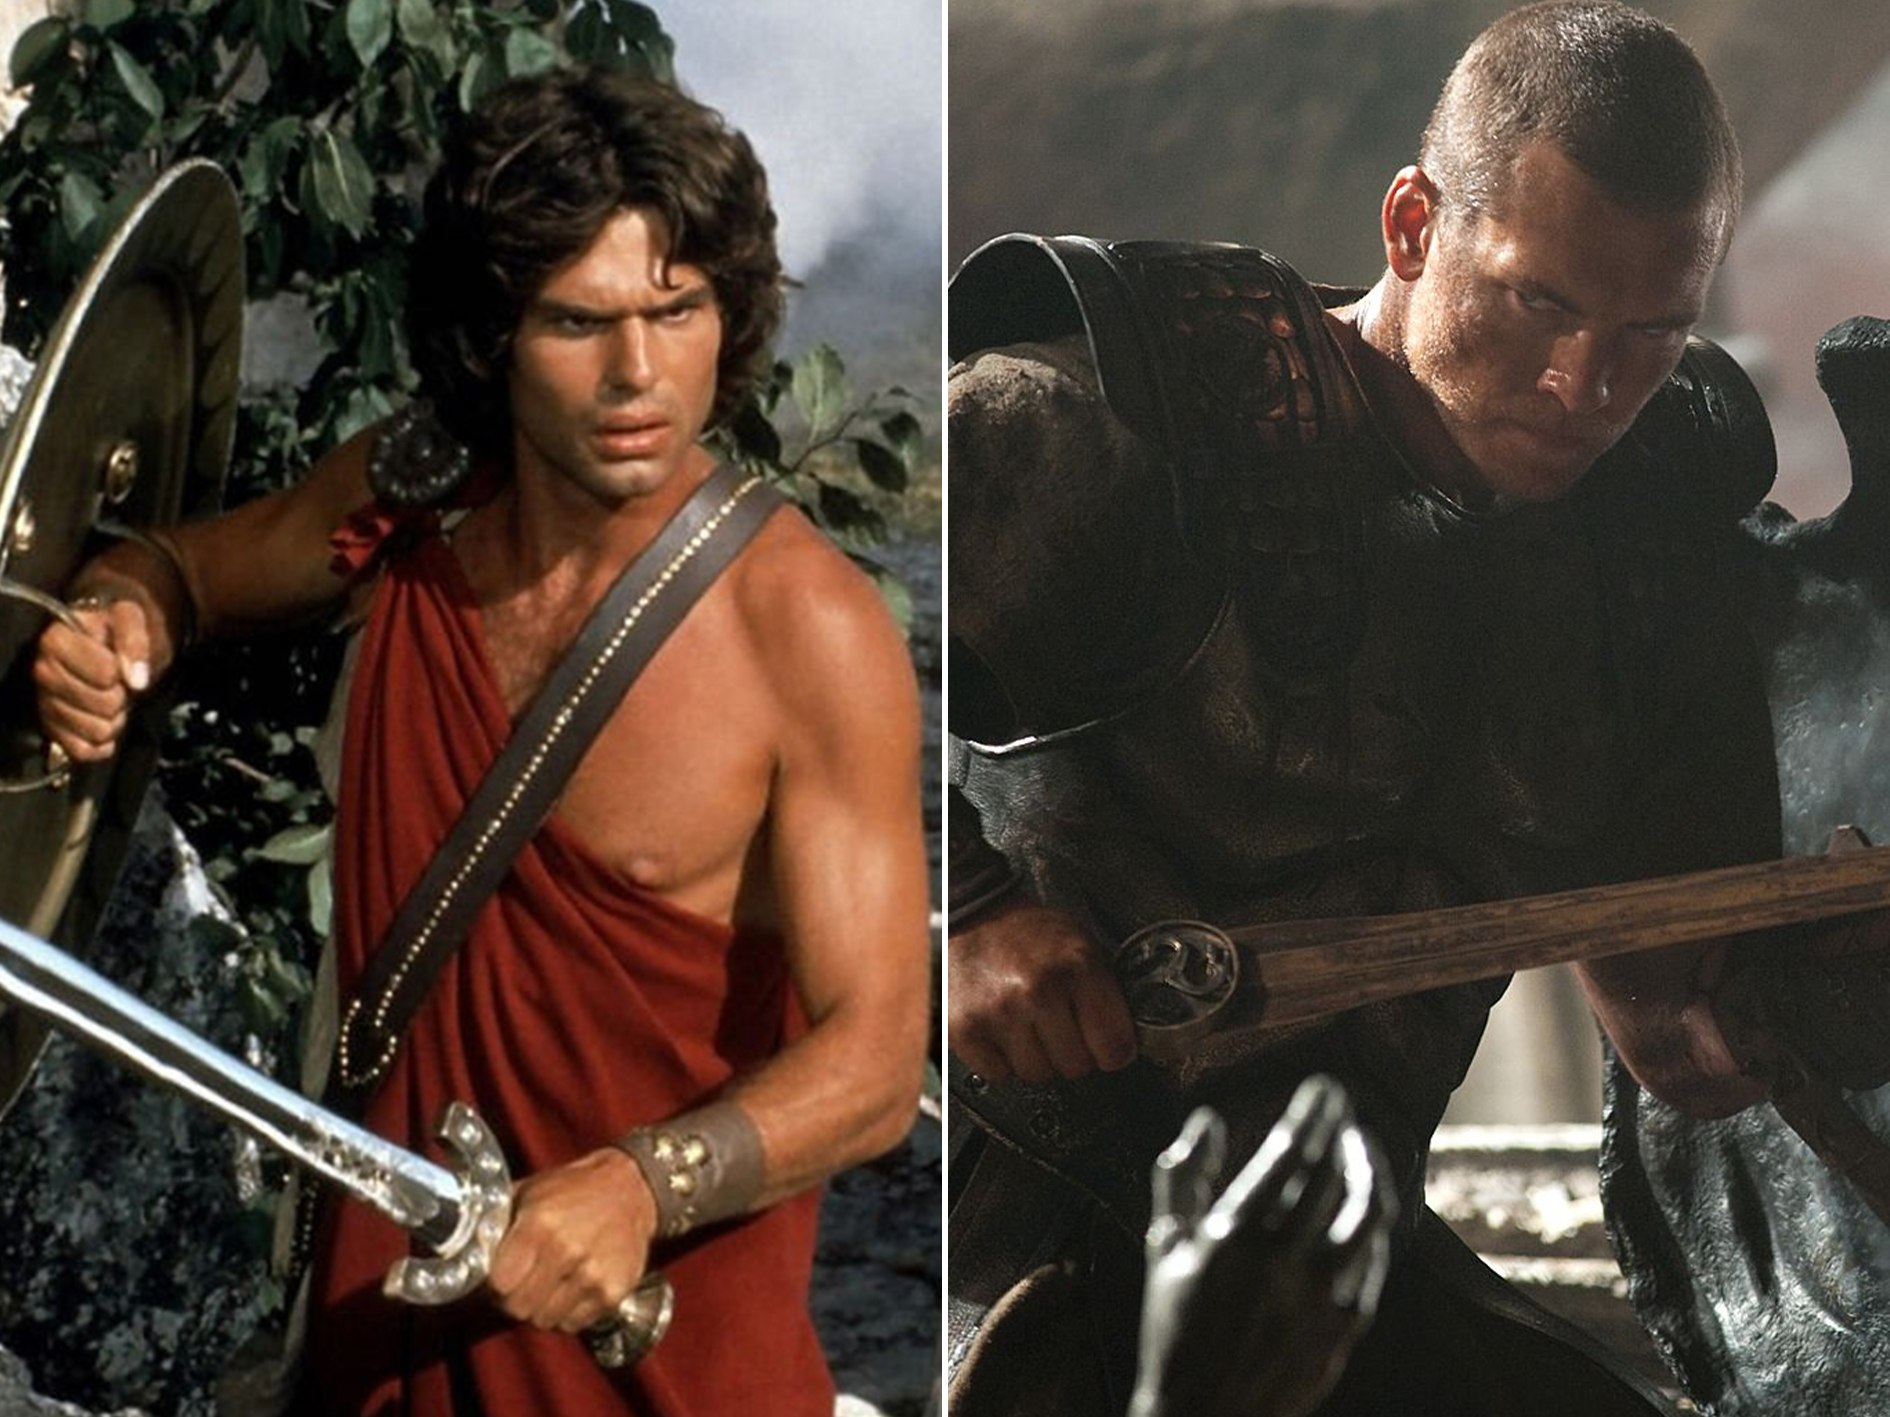 Clash of the Titans Awful Remakes Of Classic 80s Films That Should Have Been Left Unmade